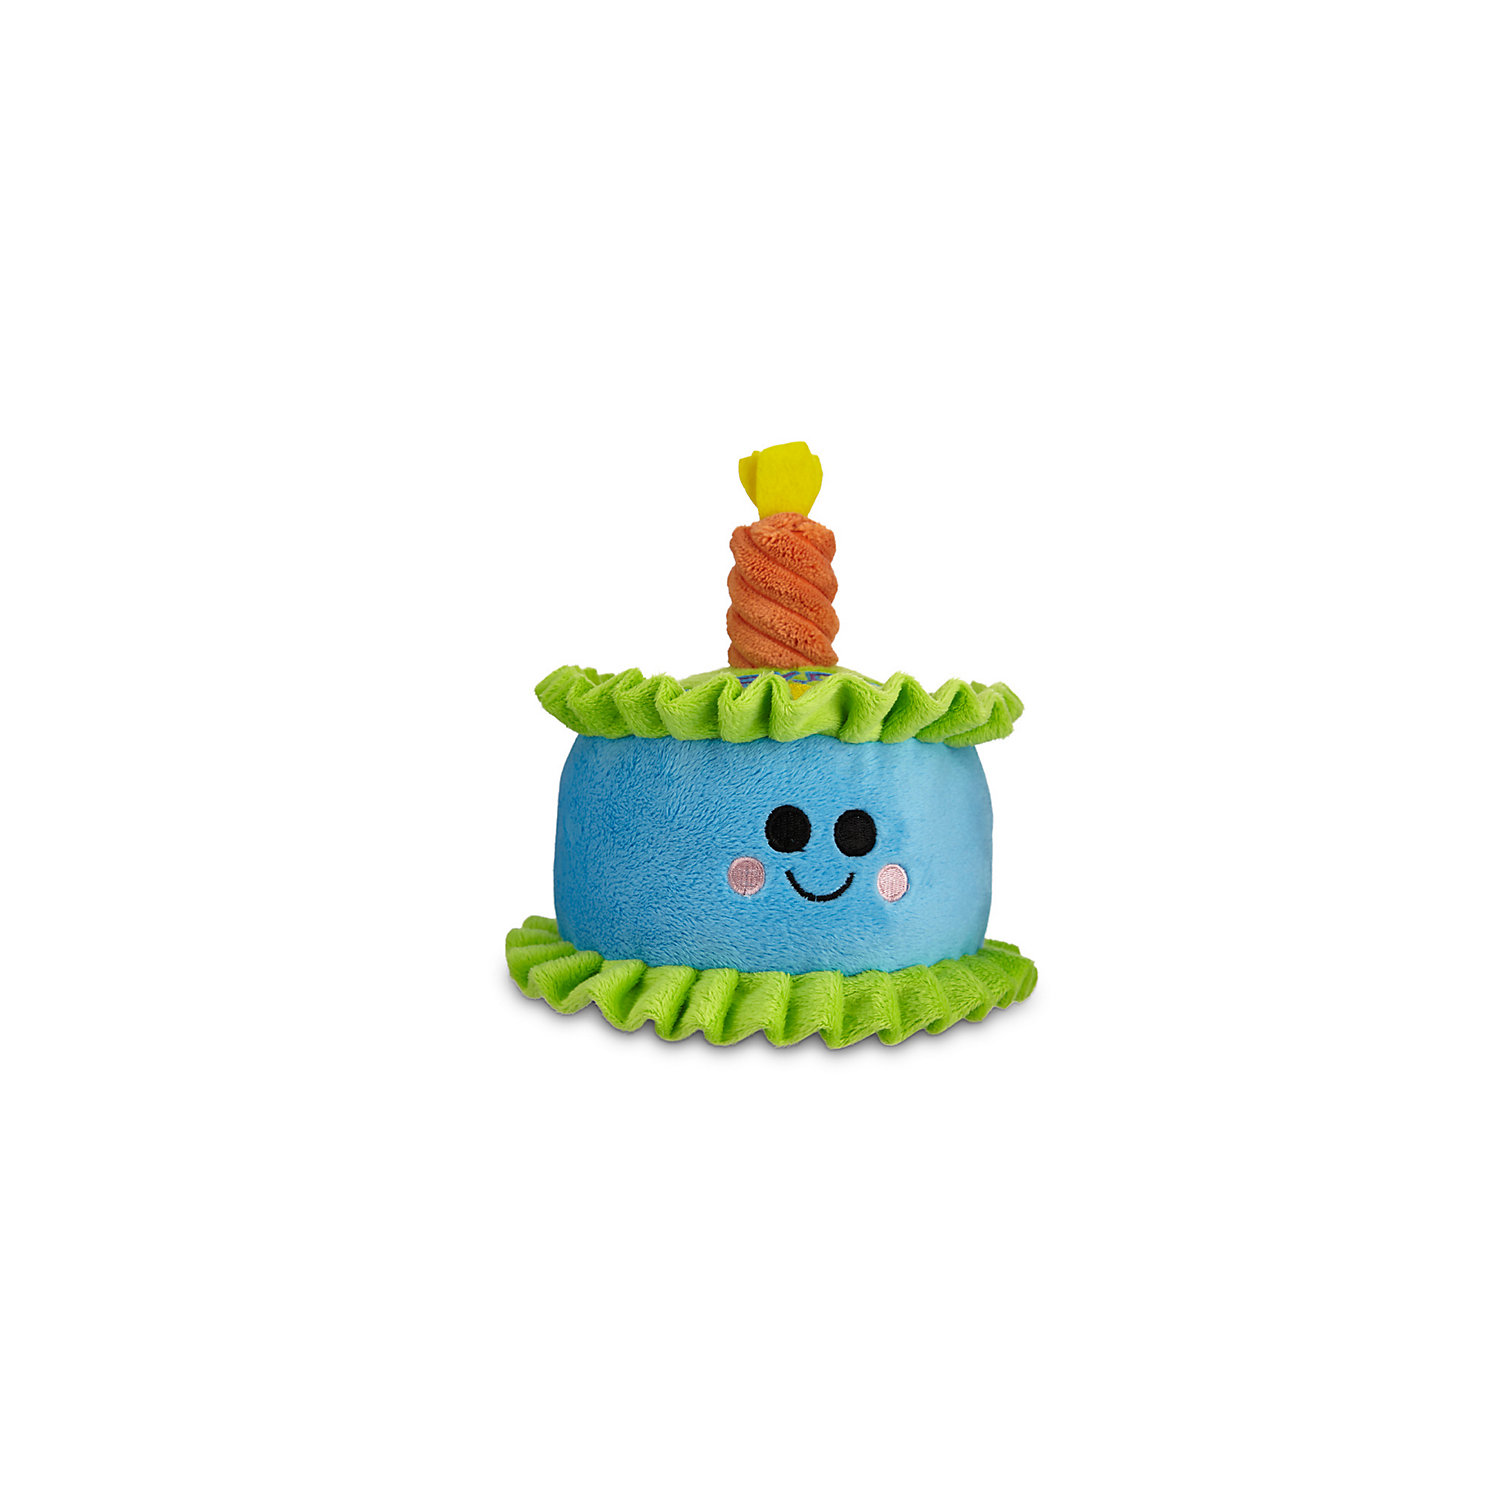 UPC 800443962879 Product Image For Petco Special Occasions Barkday Cake Dog Toy